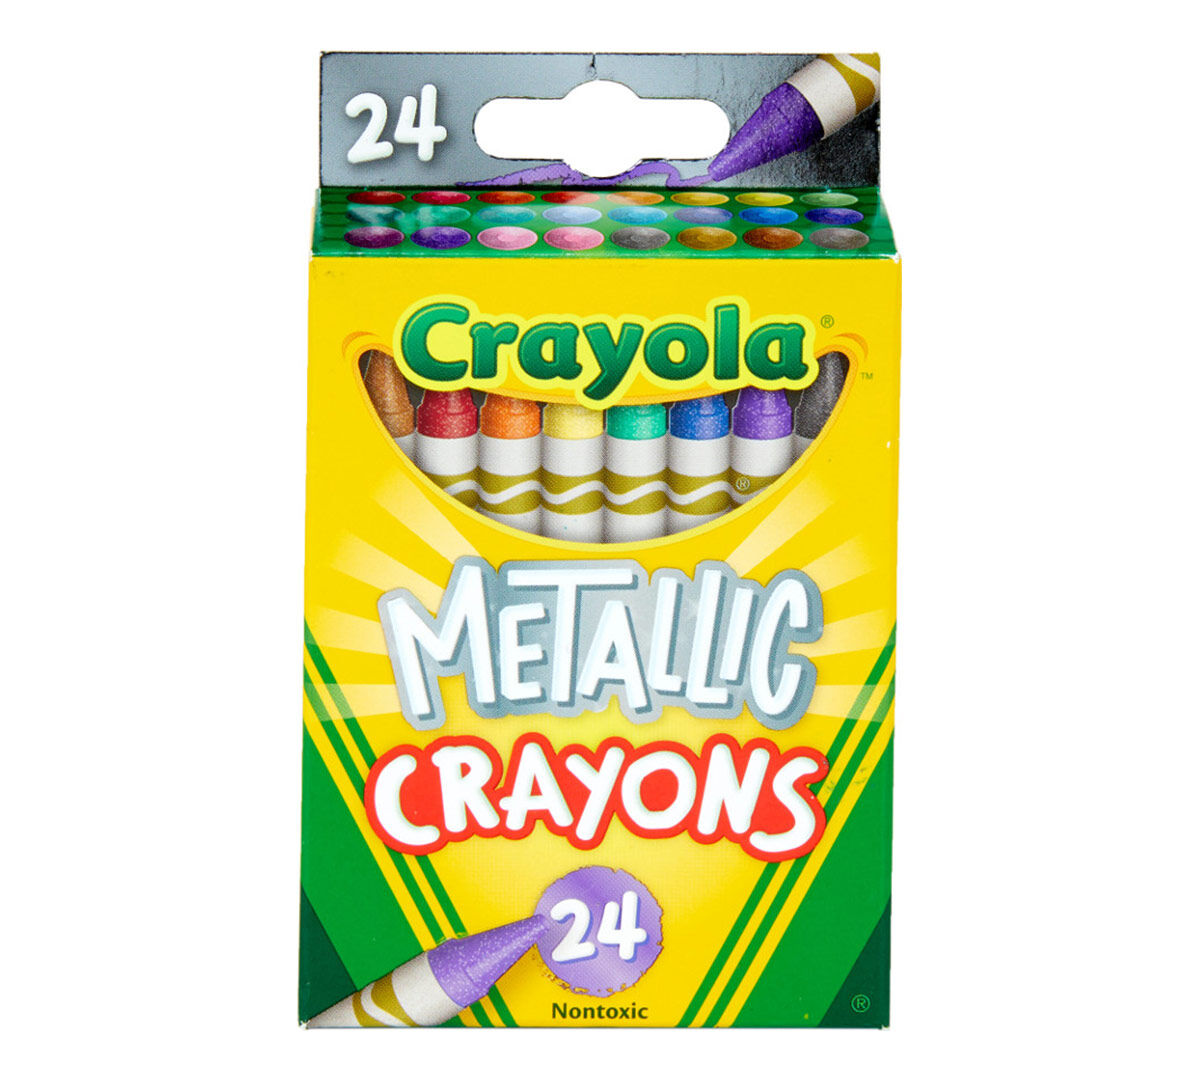 Metallic Crayons, 24 Count